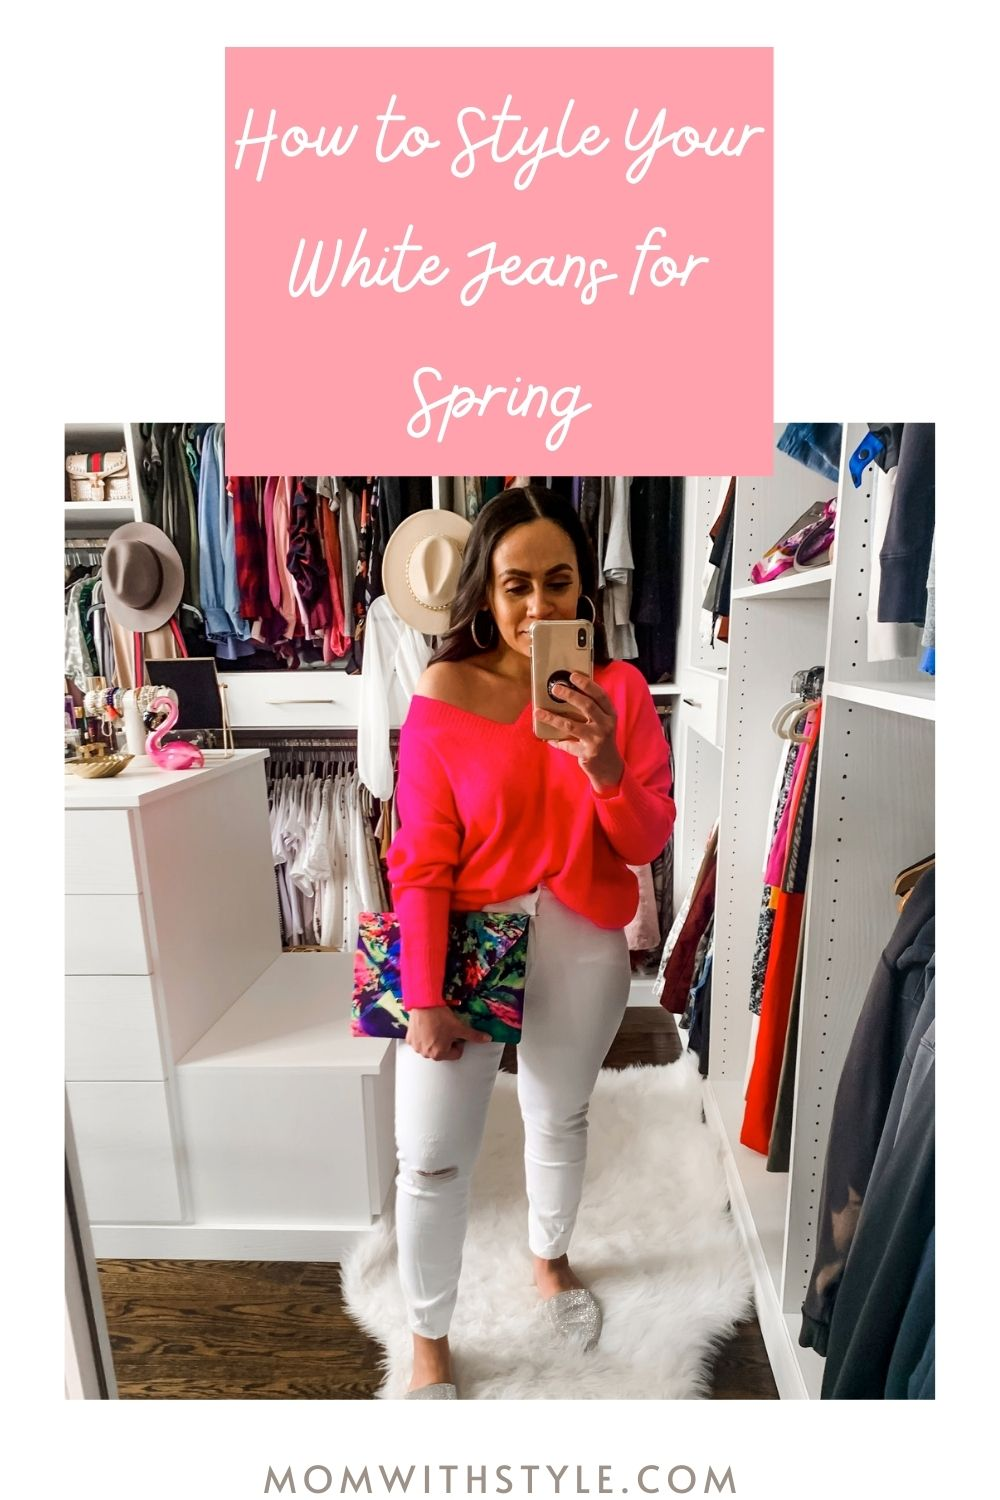 Melissa Mom with Style How to Style Your White Jeans for Spring